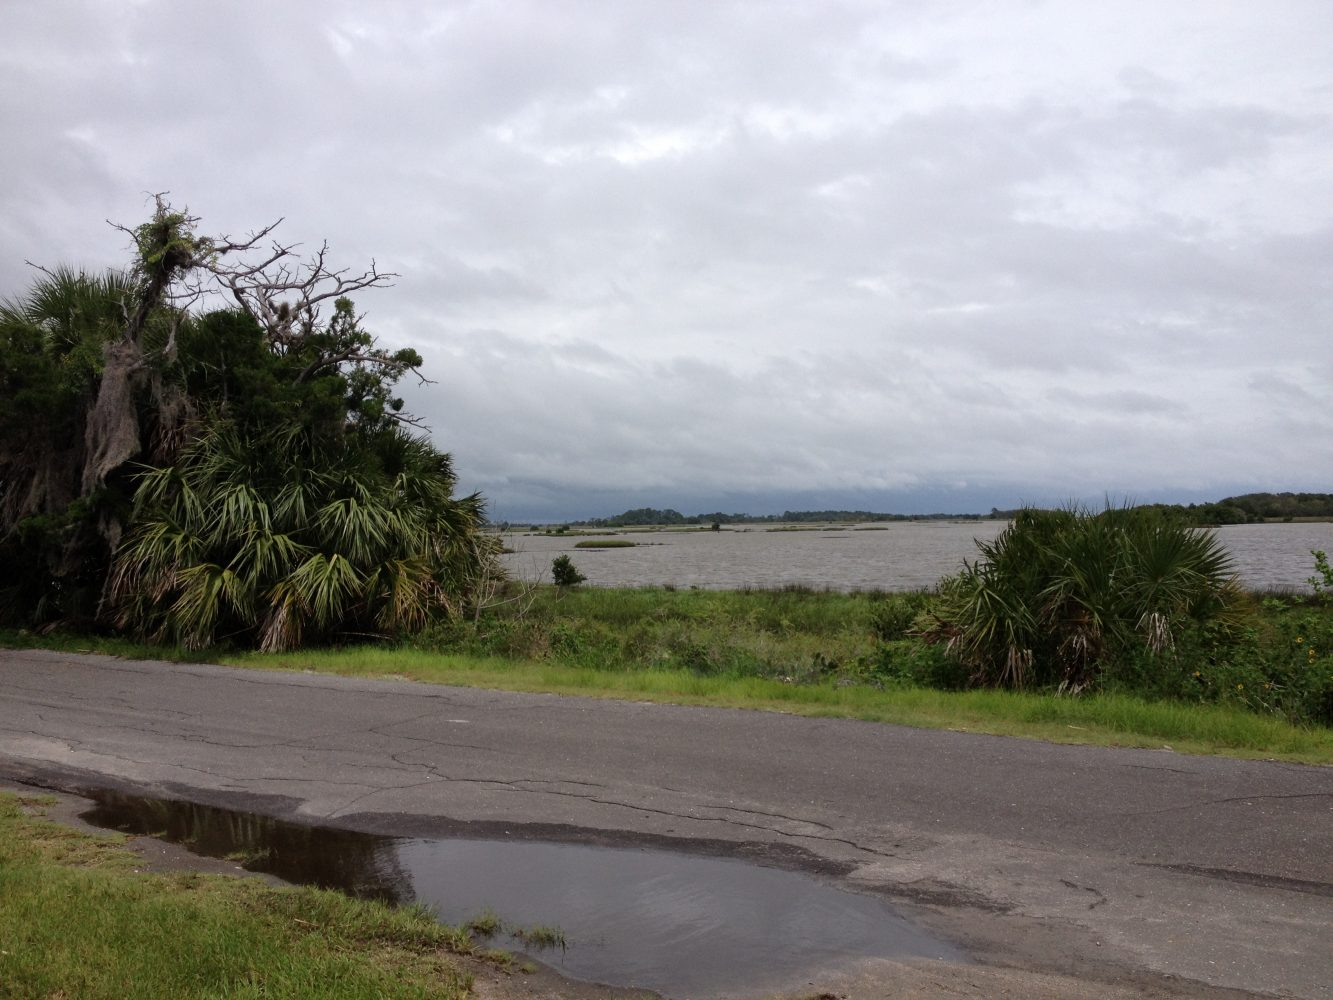 View of Gulf of Mexico from the Shellfish and Aqualculture Research and Education Facility in Cedar Key.